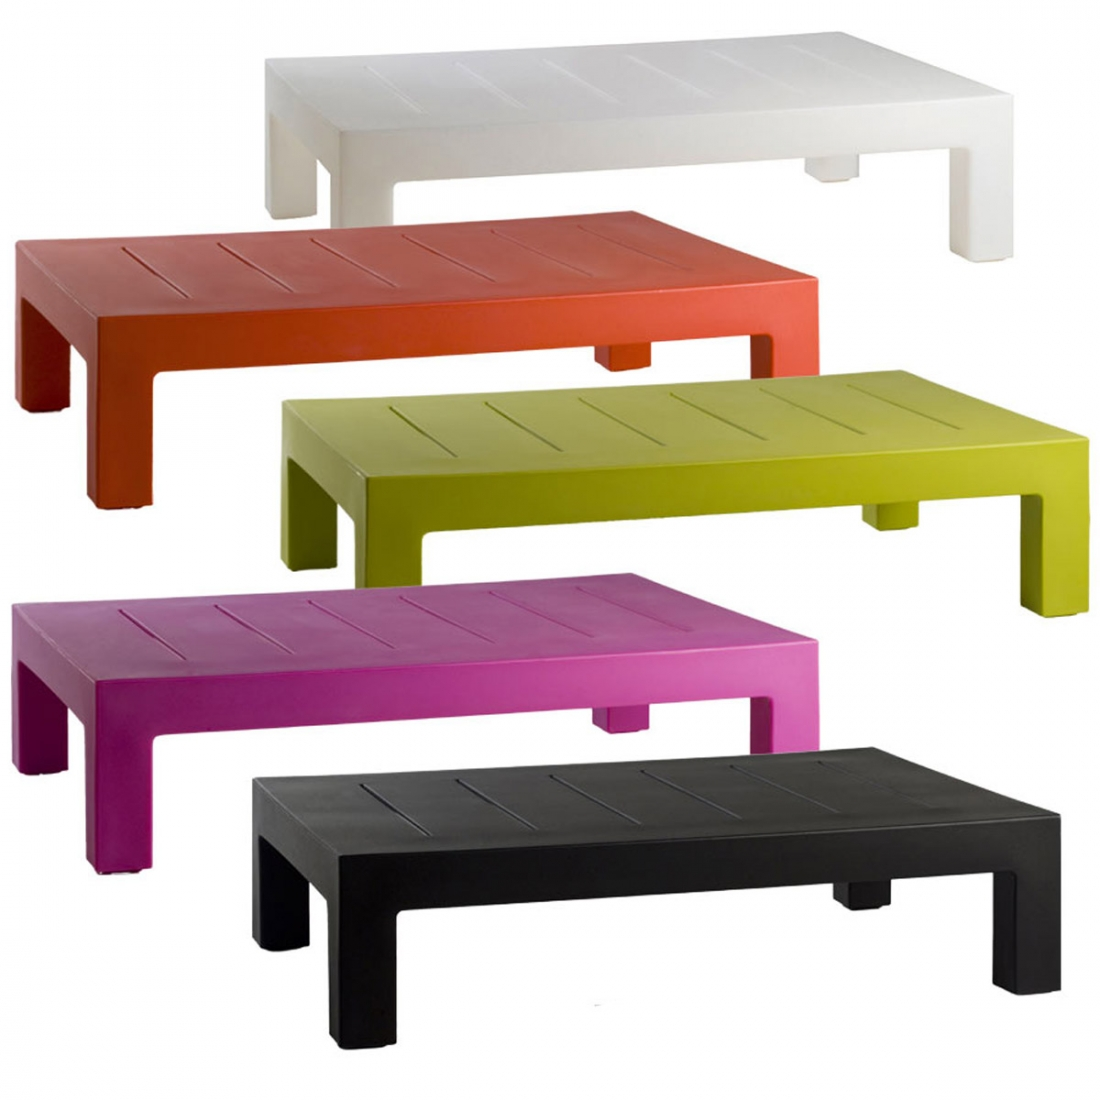 Table basse design d ext rieur jut par vondom - Table basse exterieure ...